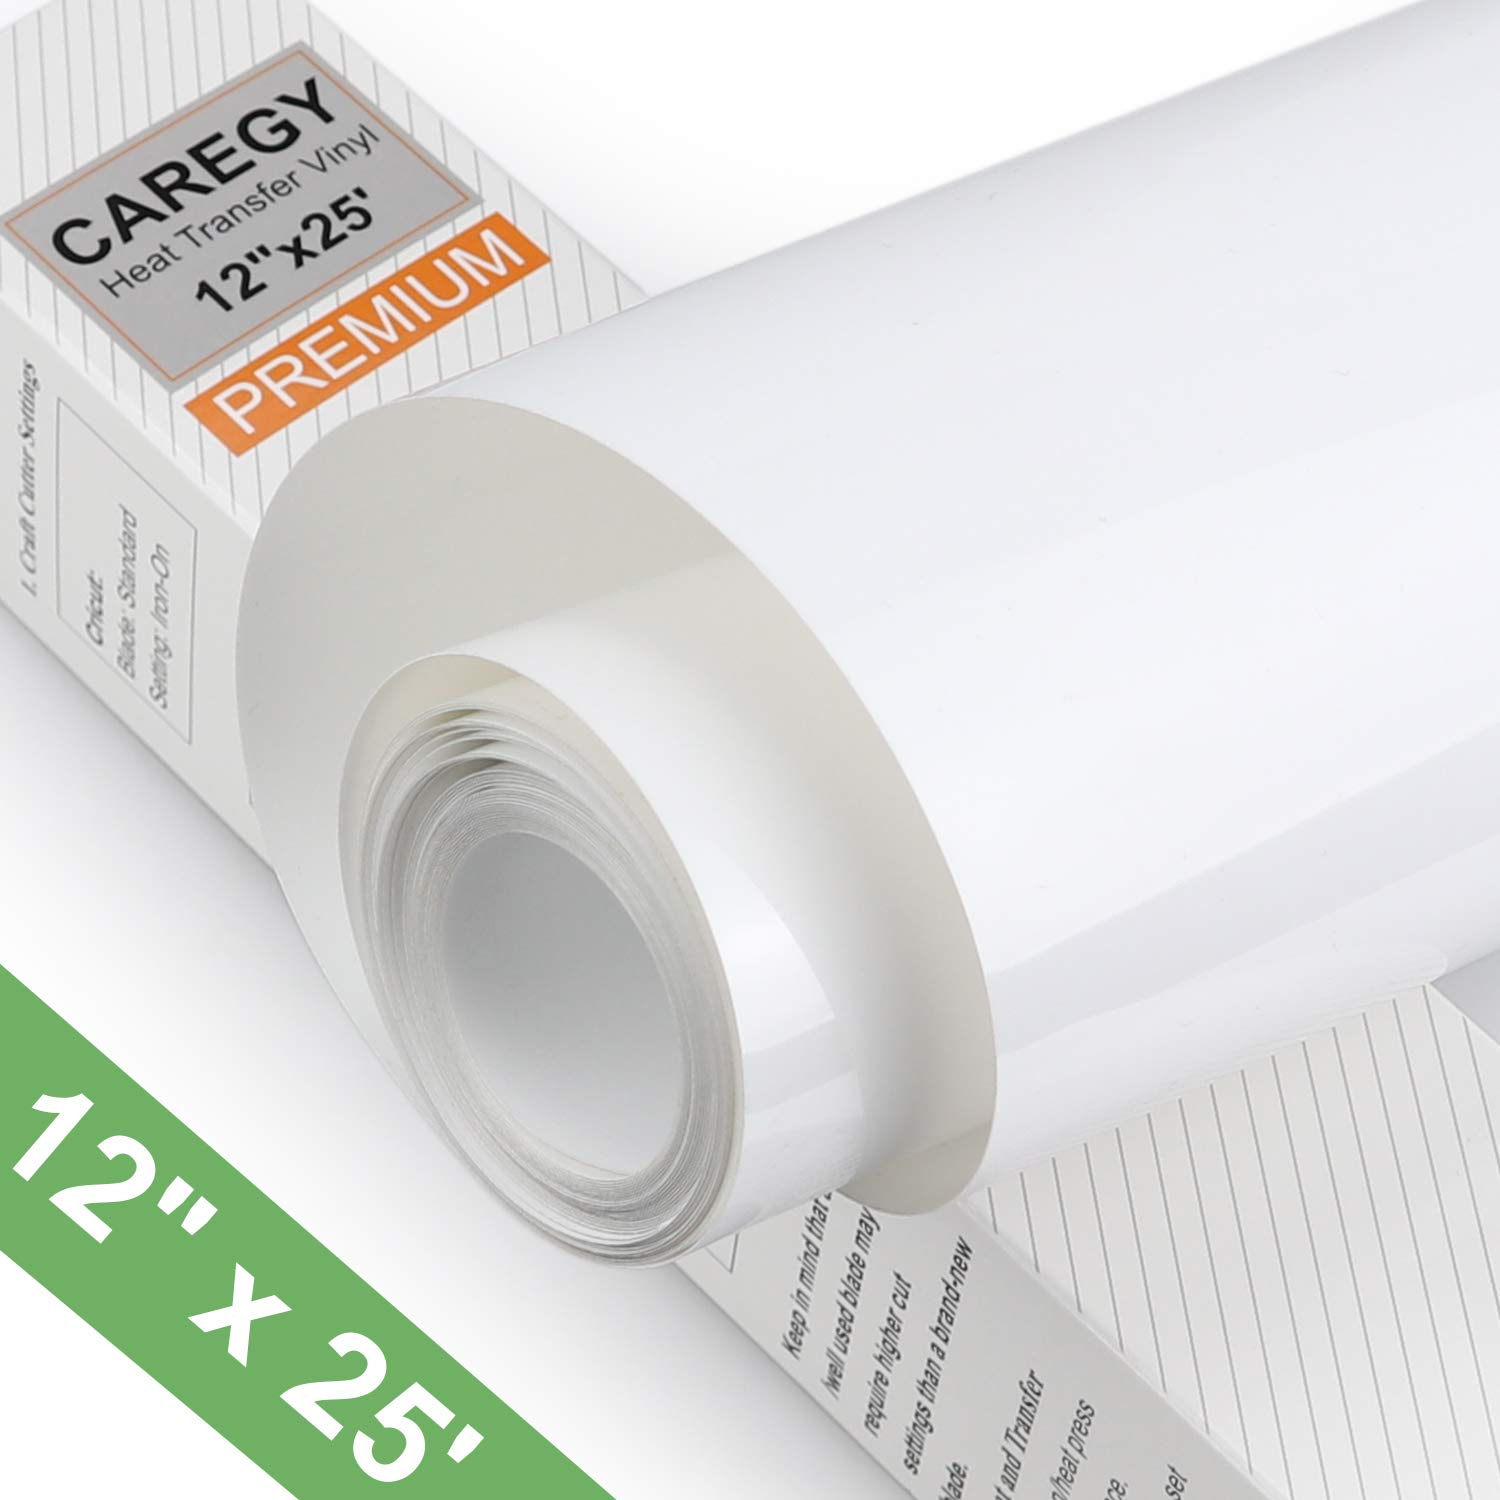 CAREGY HTV 12'' x 25ft Roll - Iron On Heat Transfer Vinyl (White) by CAREGY